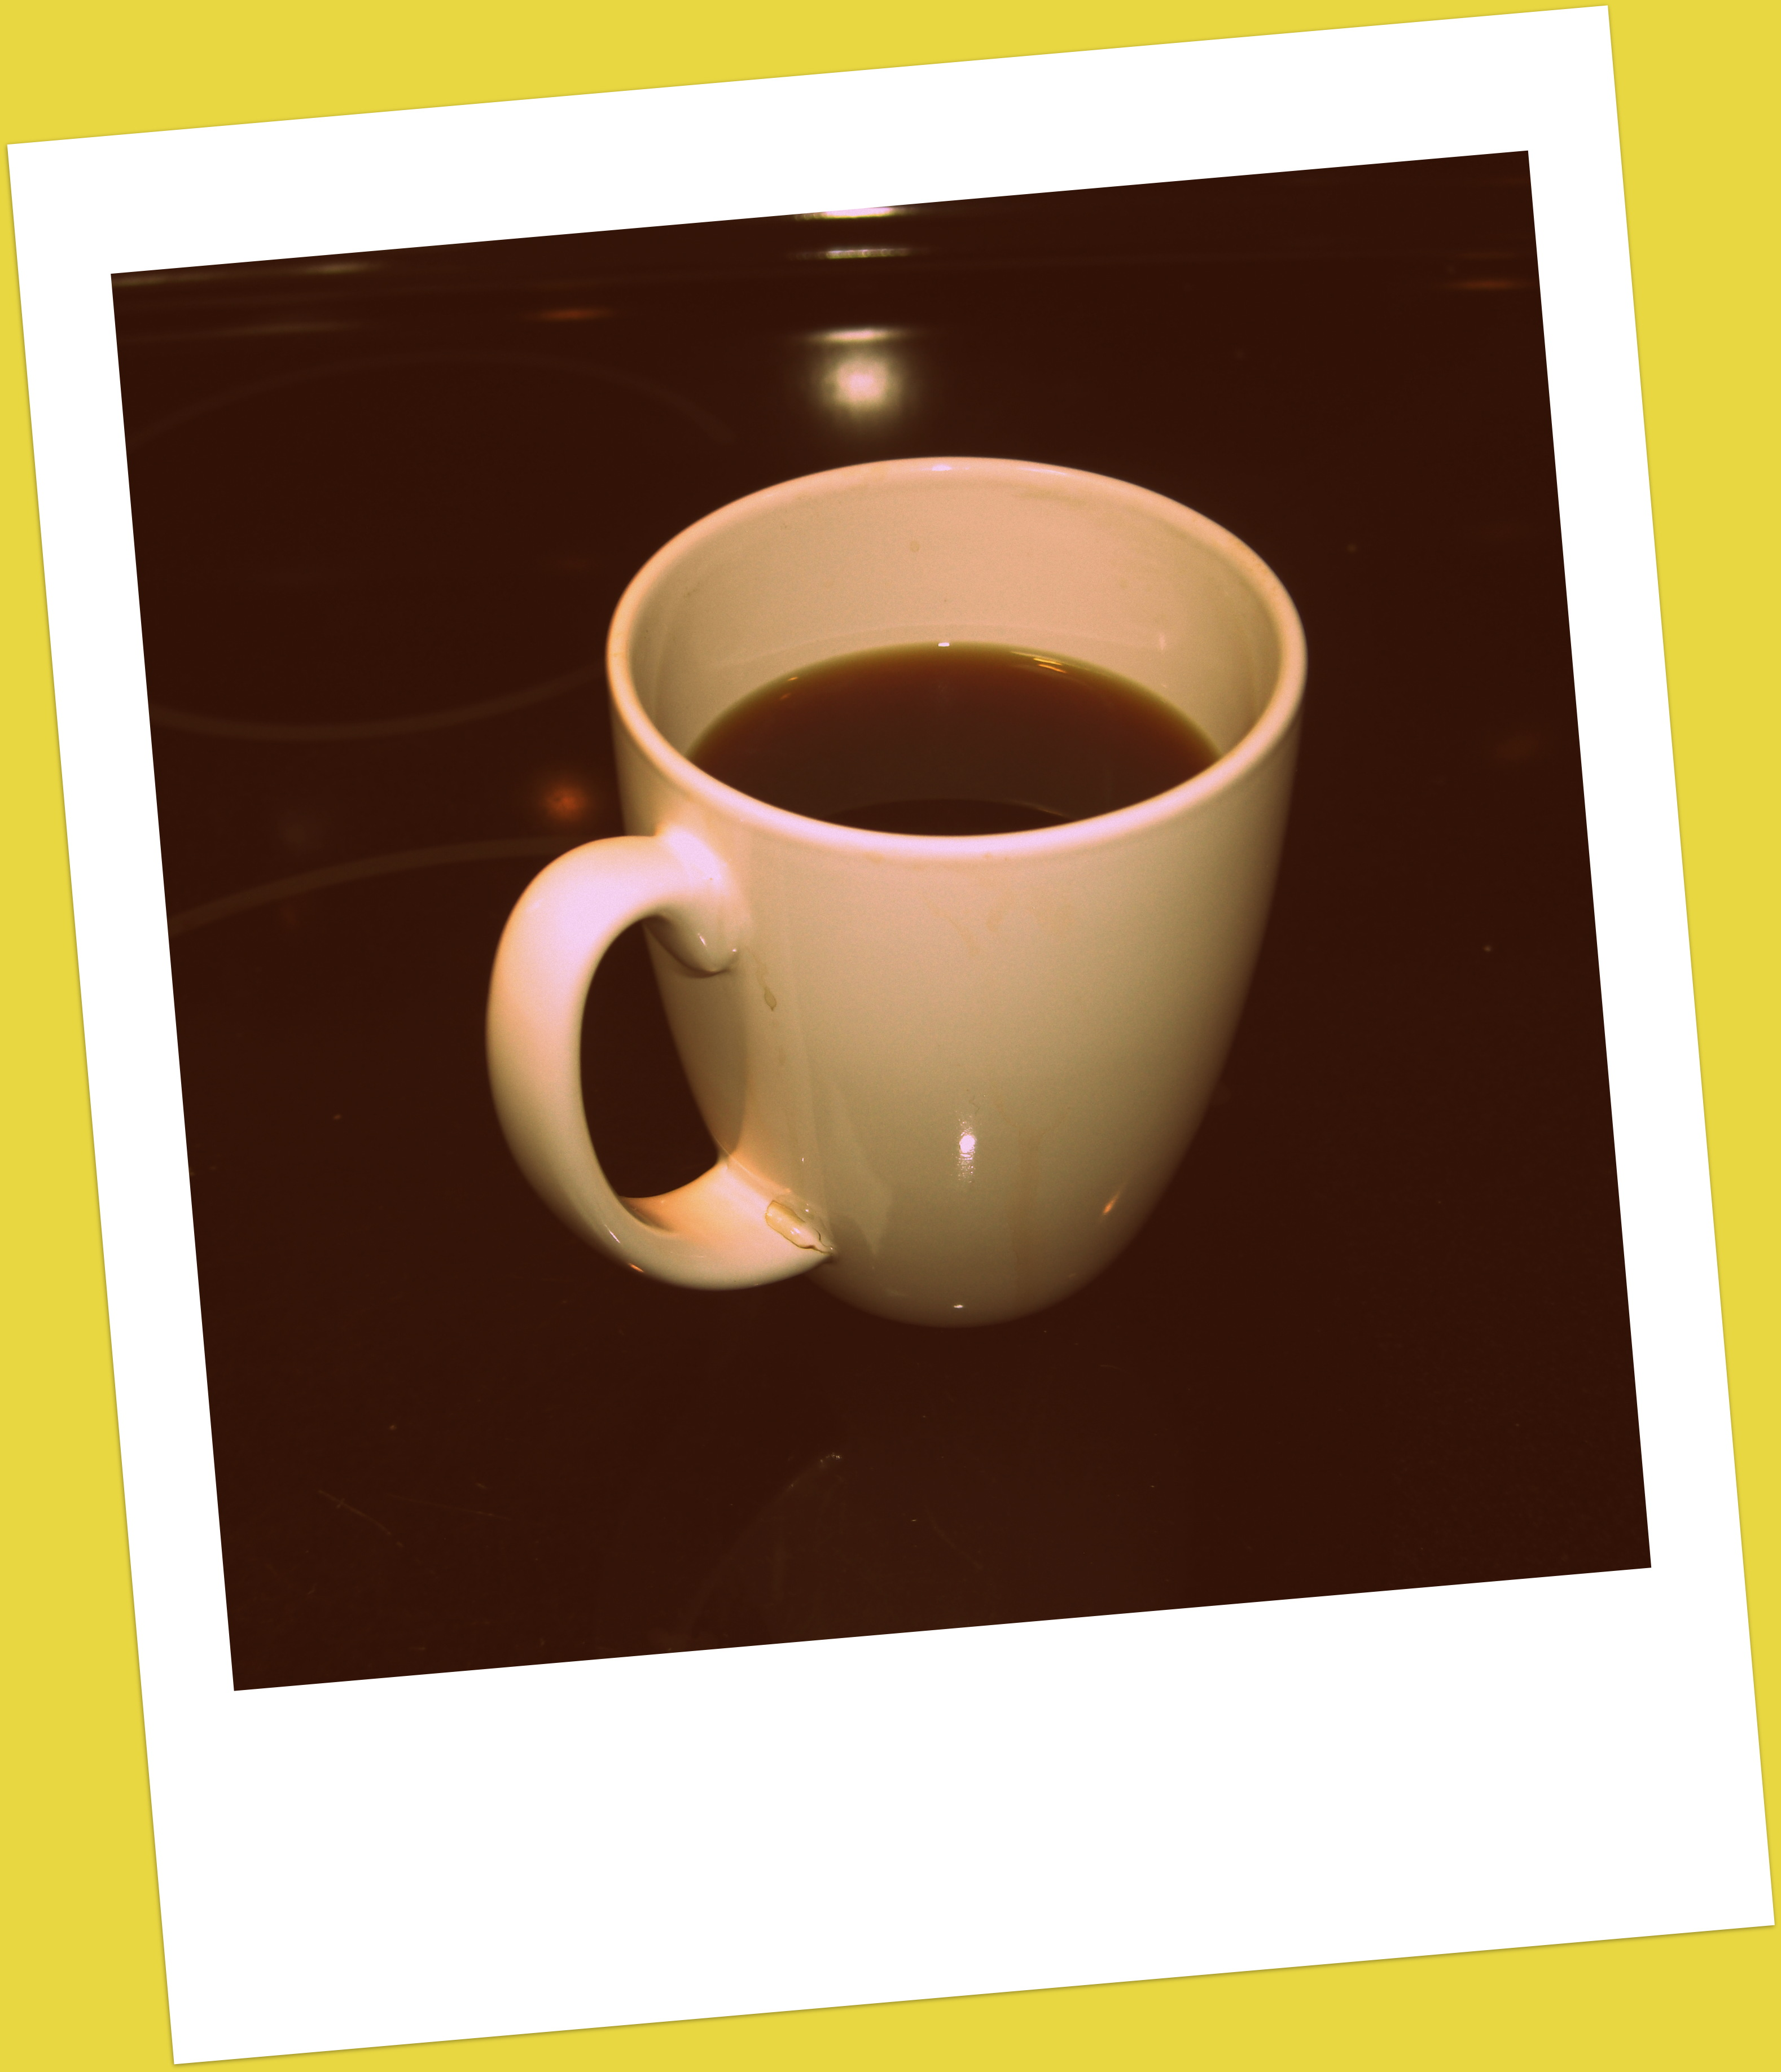 $1 One Cup Coffee Maker